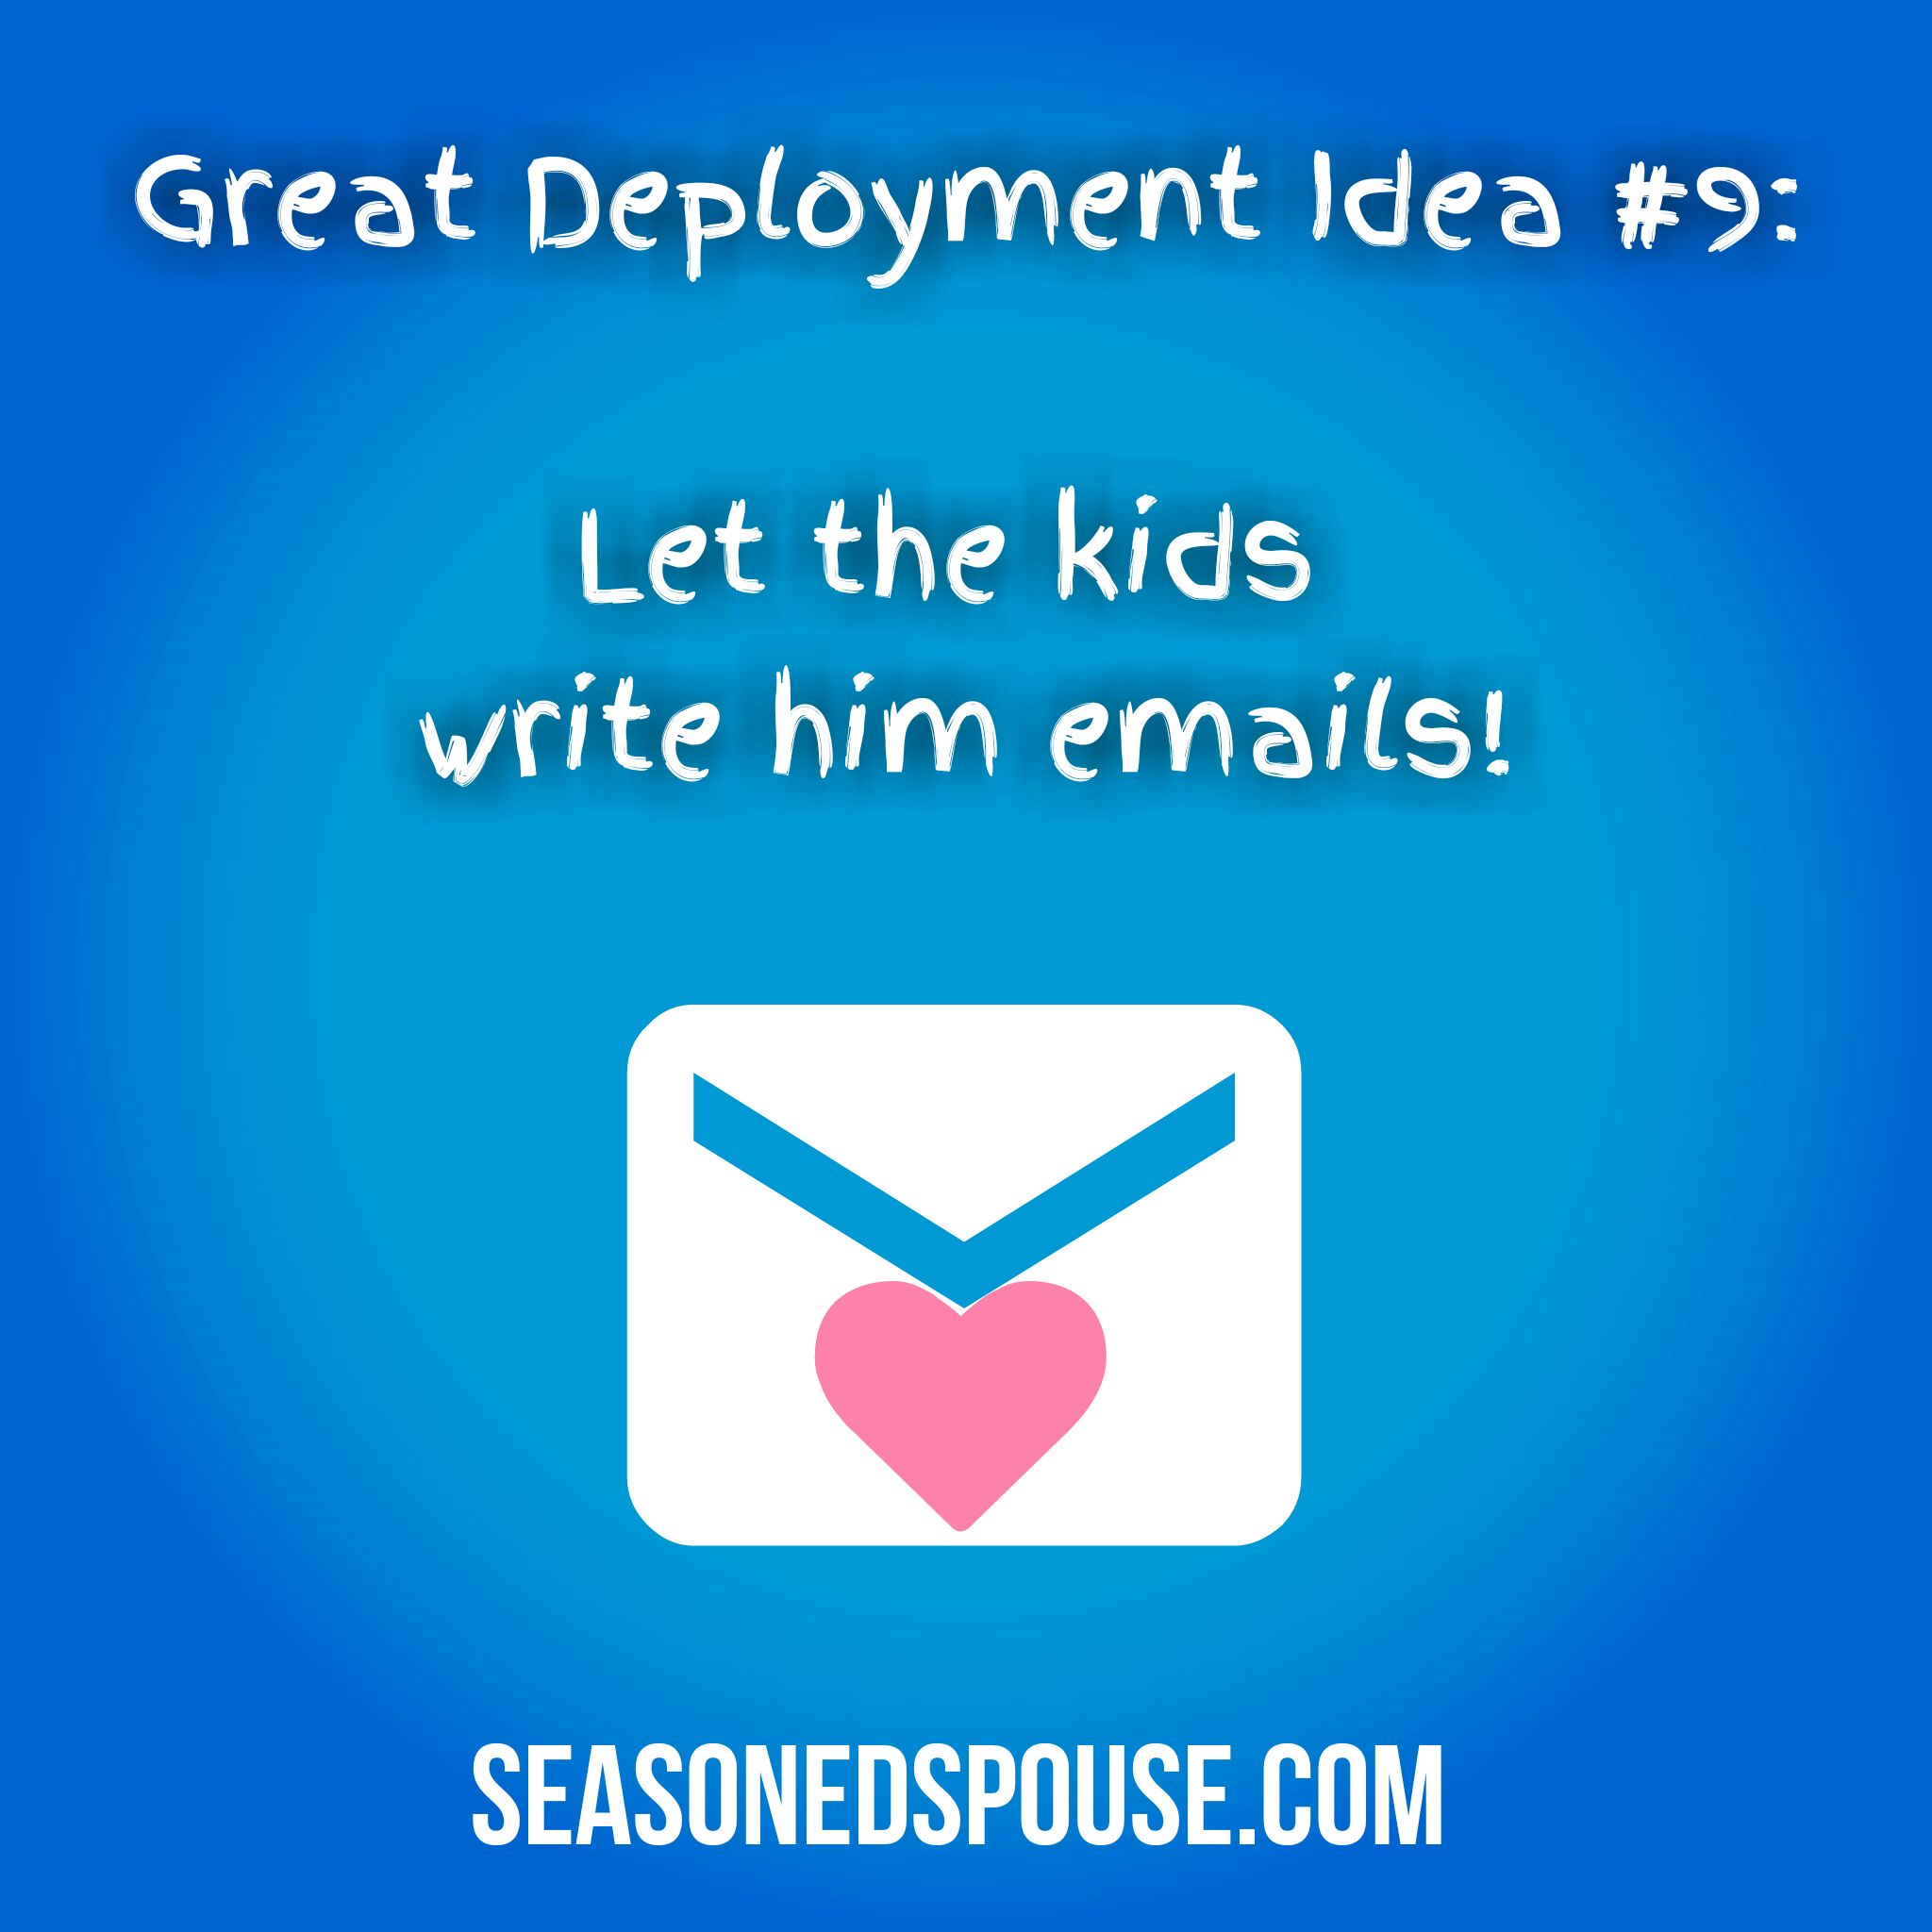 Let the kids write him emails